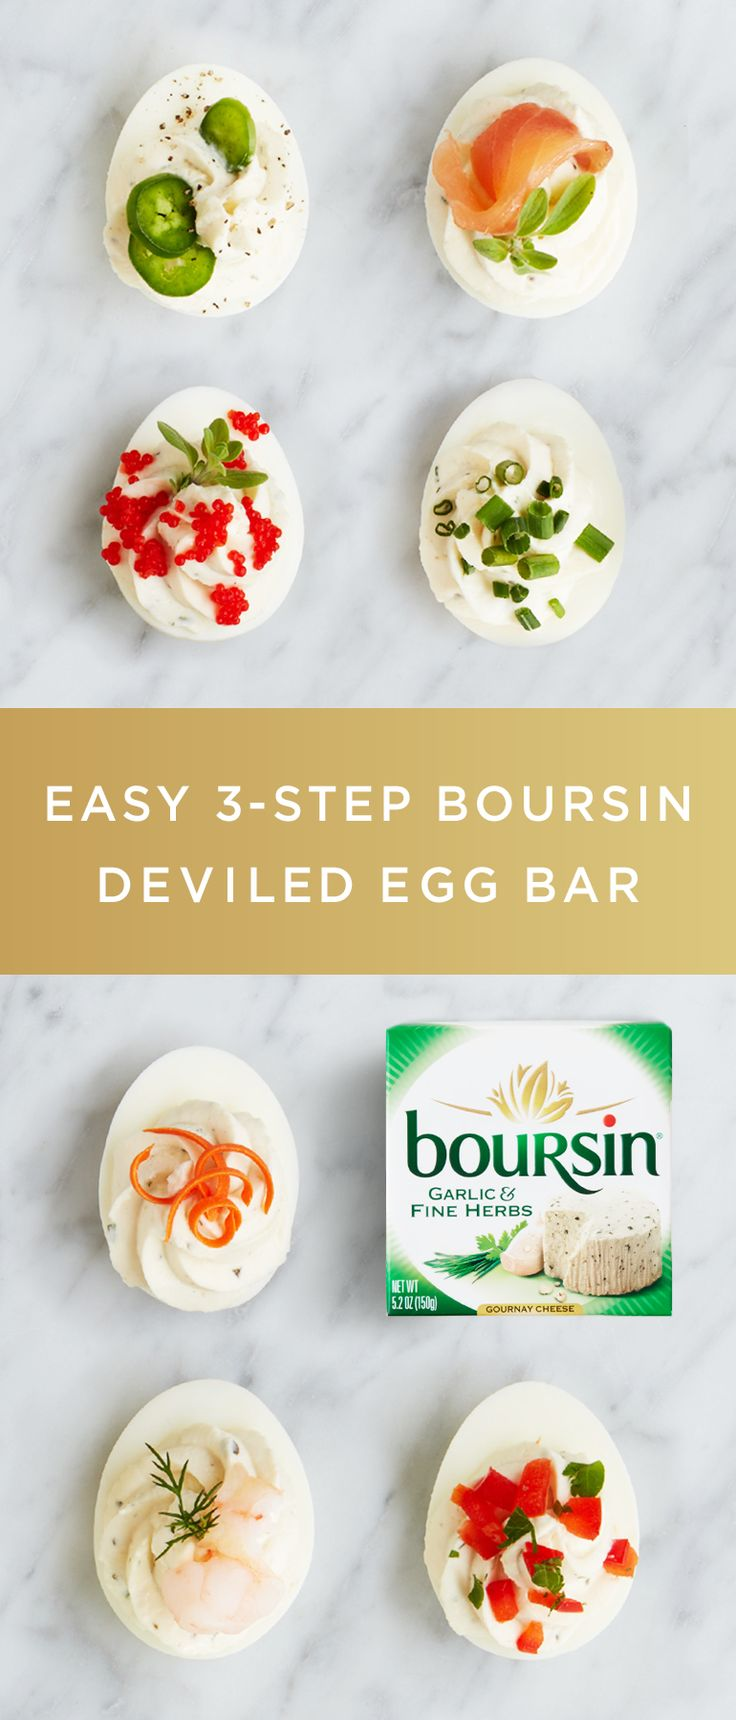 Make Easter dinner unforgettable with this easy 3-step Boursin Deviled Egg Bar. First, hollow out hard-boiled eggs as if you were making deviled eggs. Next, fill a few bowls with interesting toppings like crab meat, bacon, olives, smoked salmon, jalapeños, or anything else you'd like to try. Finally, add your favorite flavor of Boursin cheese. Your guests will love finding these eggs over and over again.""